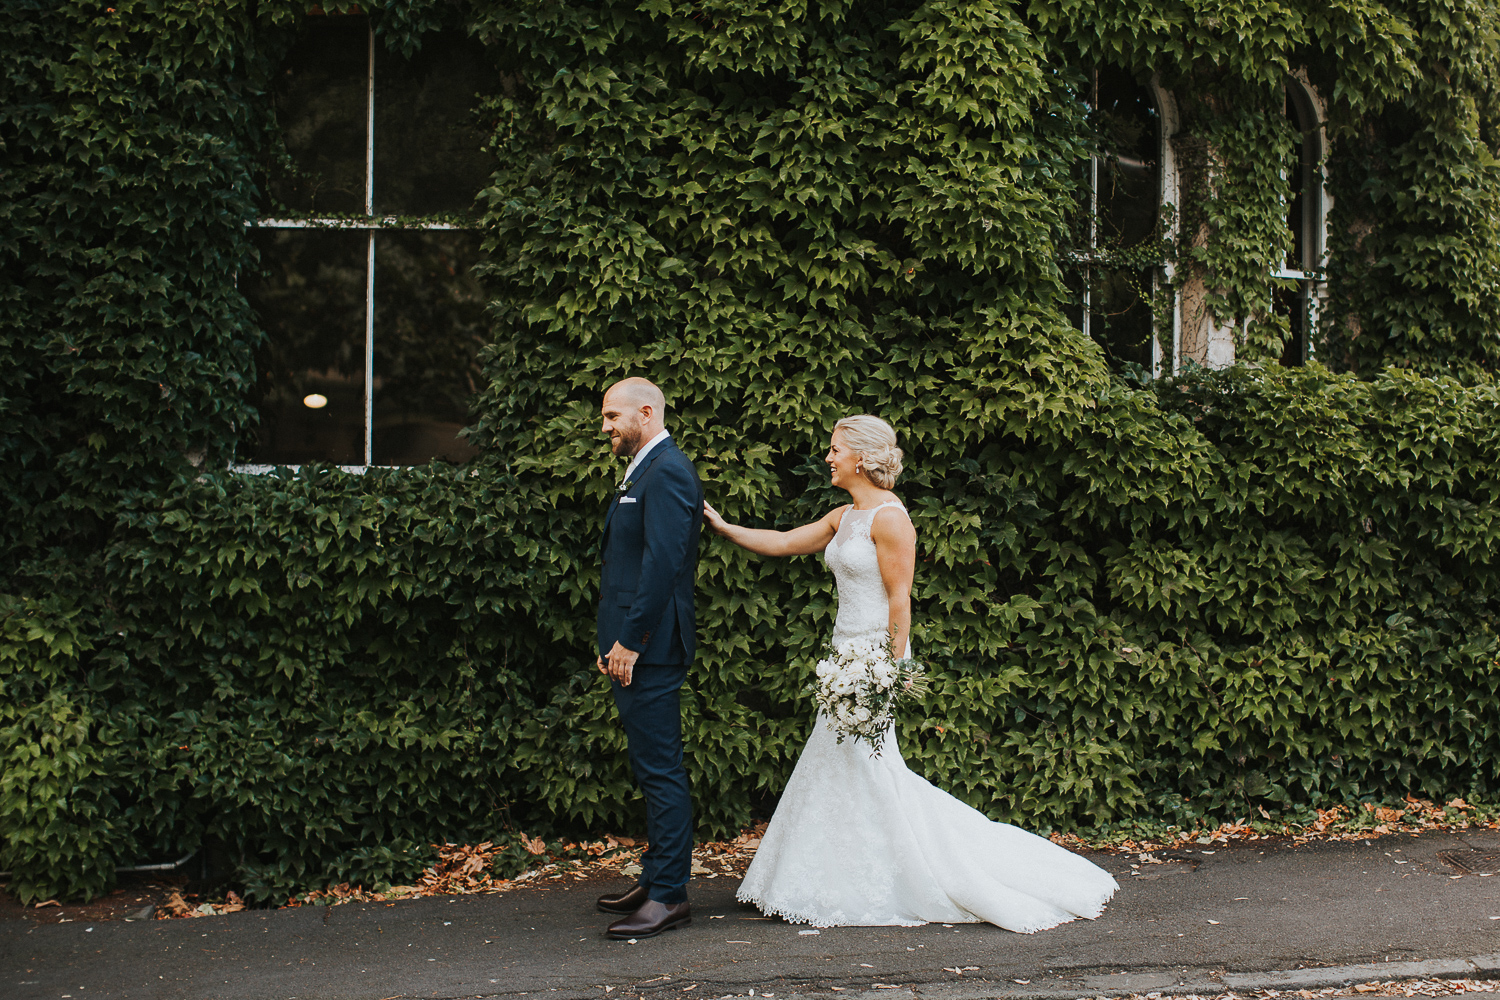 lauren dan northern club weddding-41.jpg